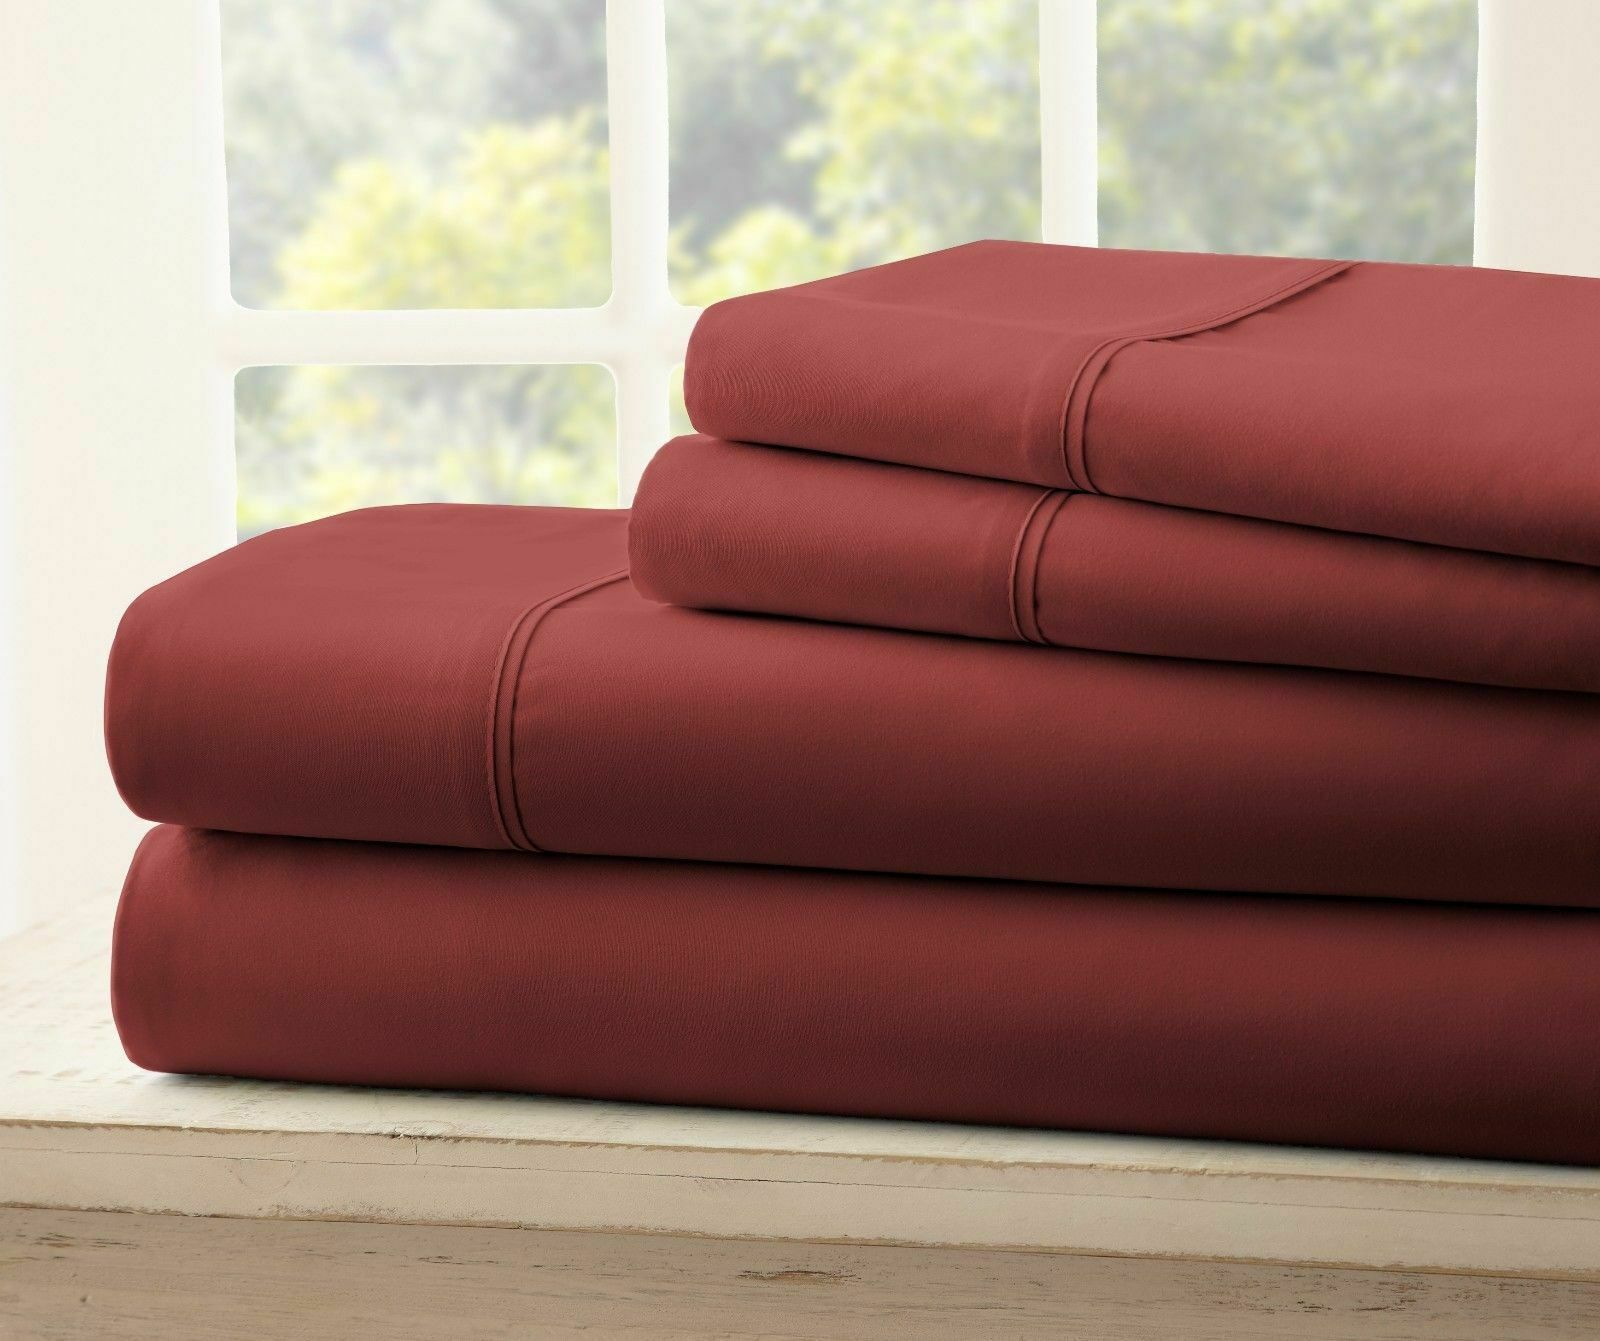 QUEEN SIZE AND KING SIZE 1800 SUPER SOFT WRINKLE FREE SHEET SET WITH 2 P CASES